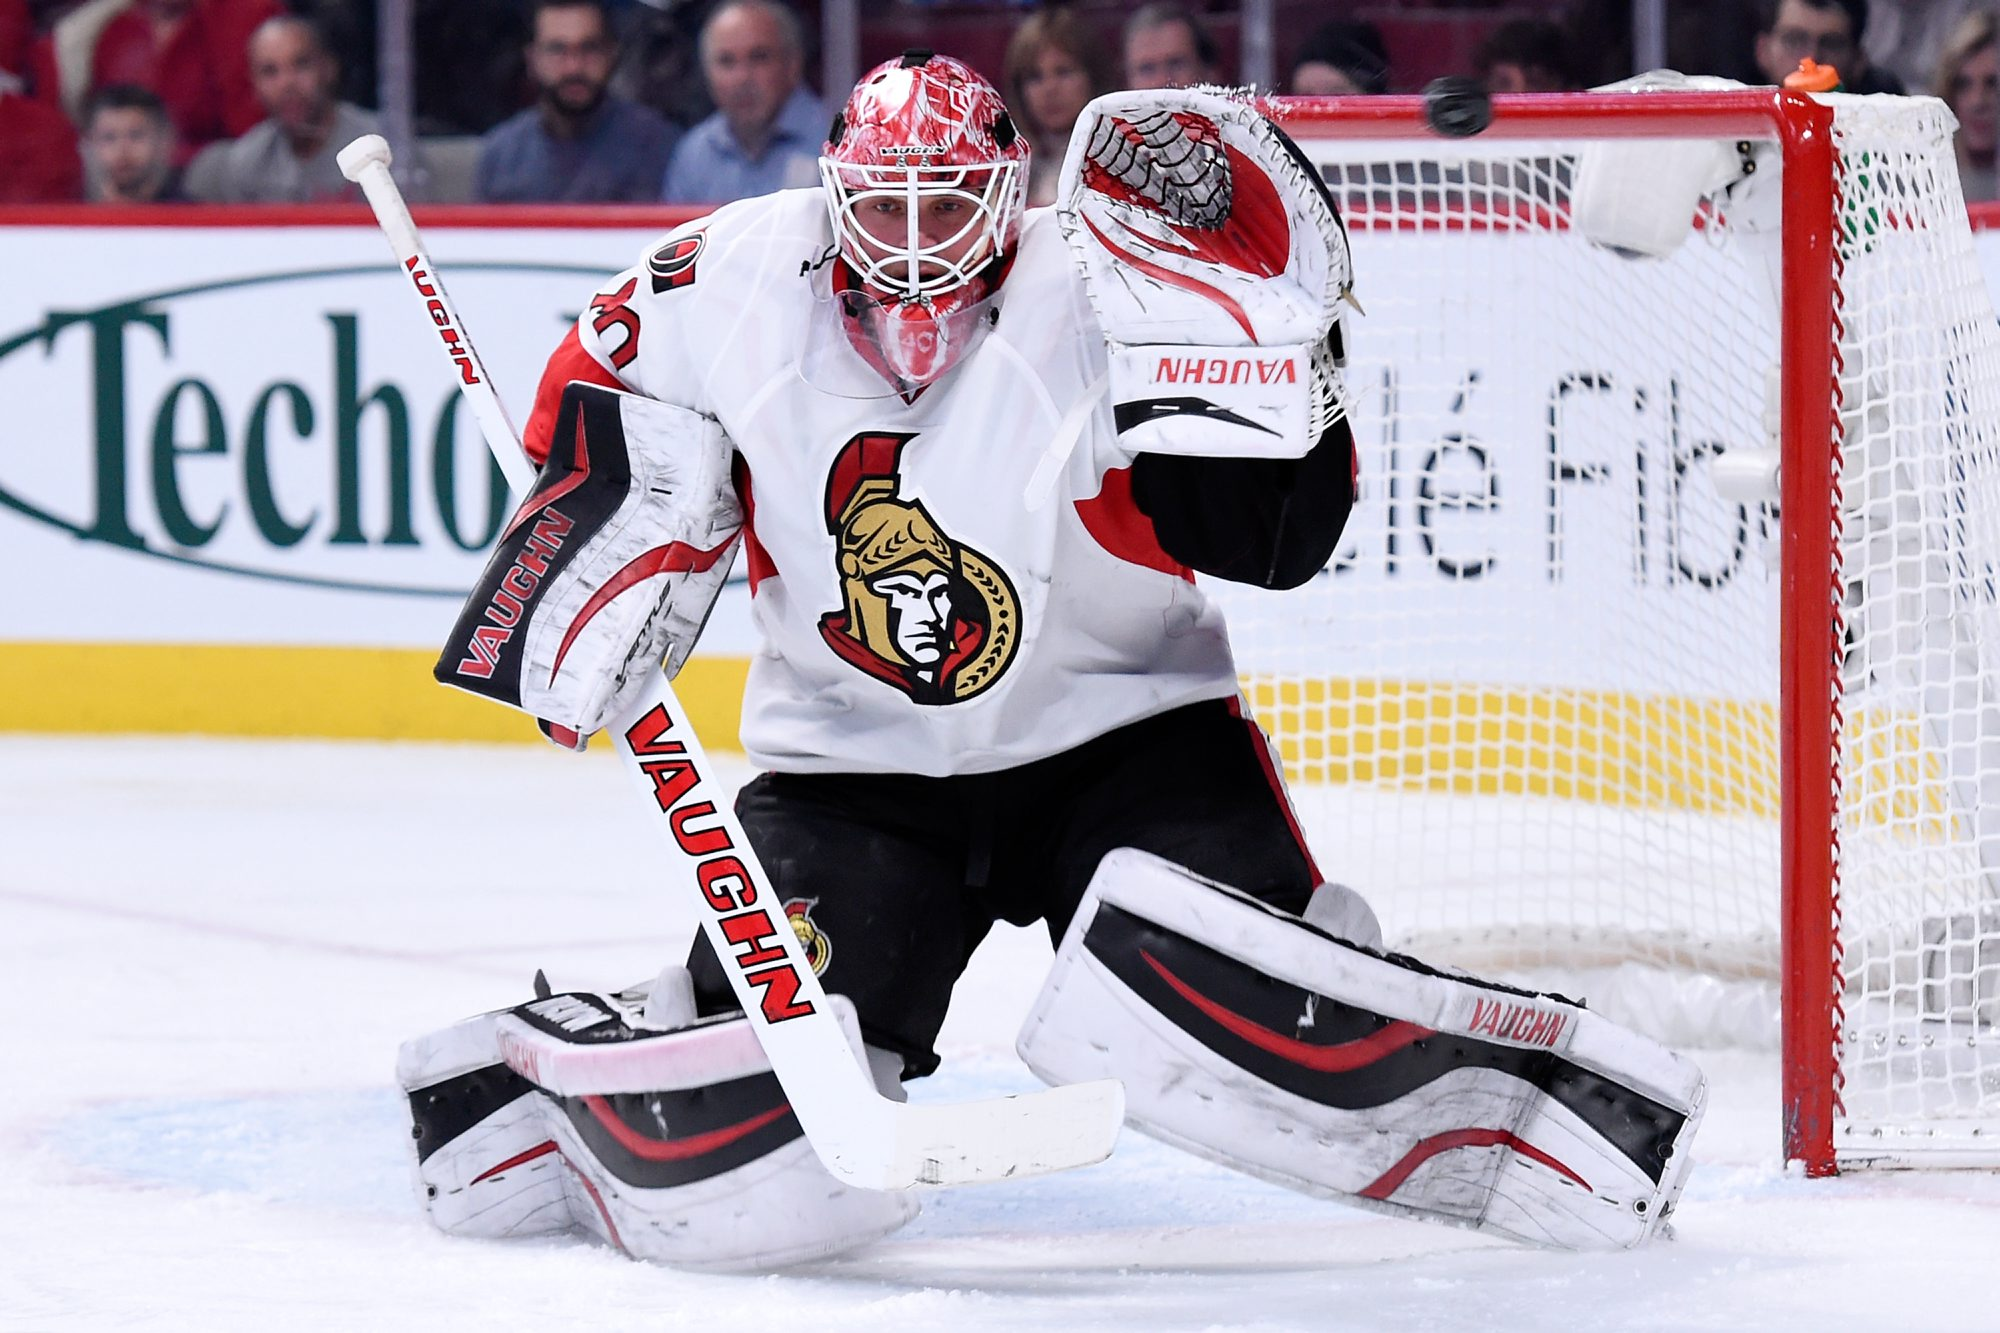 While with Ottawa, Robin Lehner served as Craig Anderson's backup for his entire time there. His best season was the strike-shortened 2013 campaign.